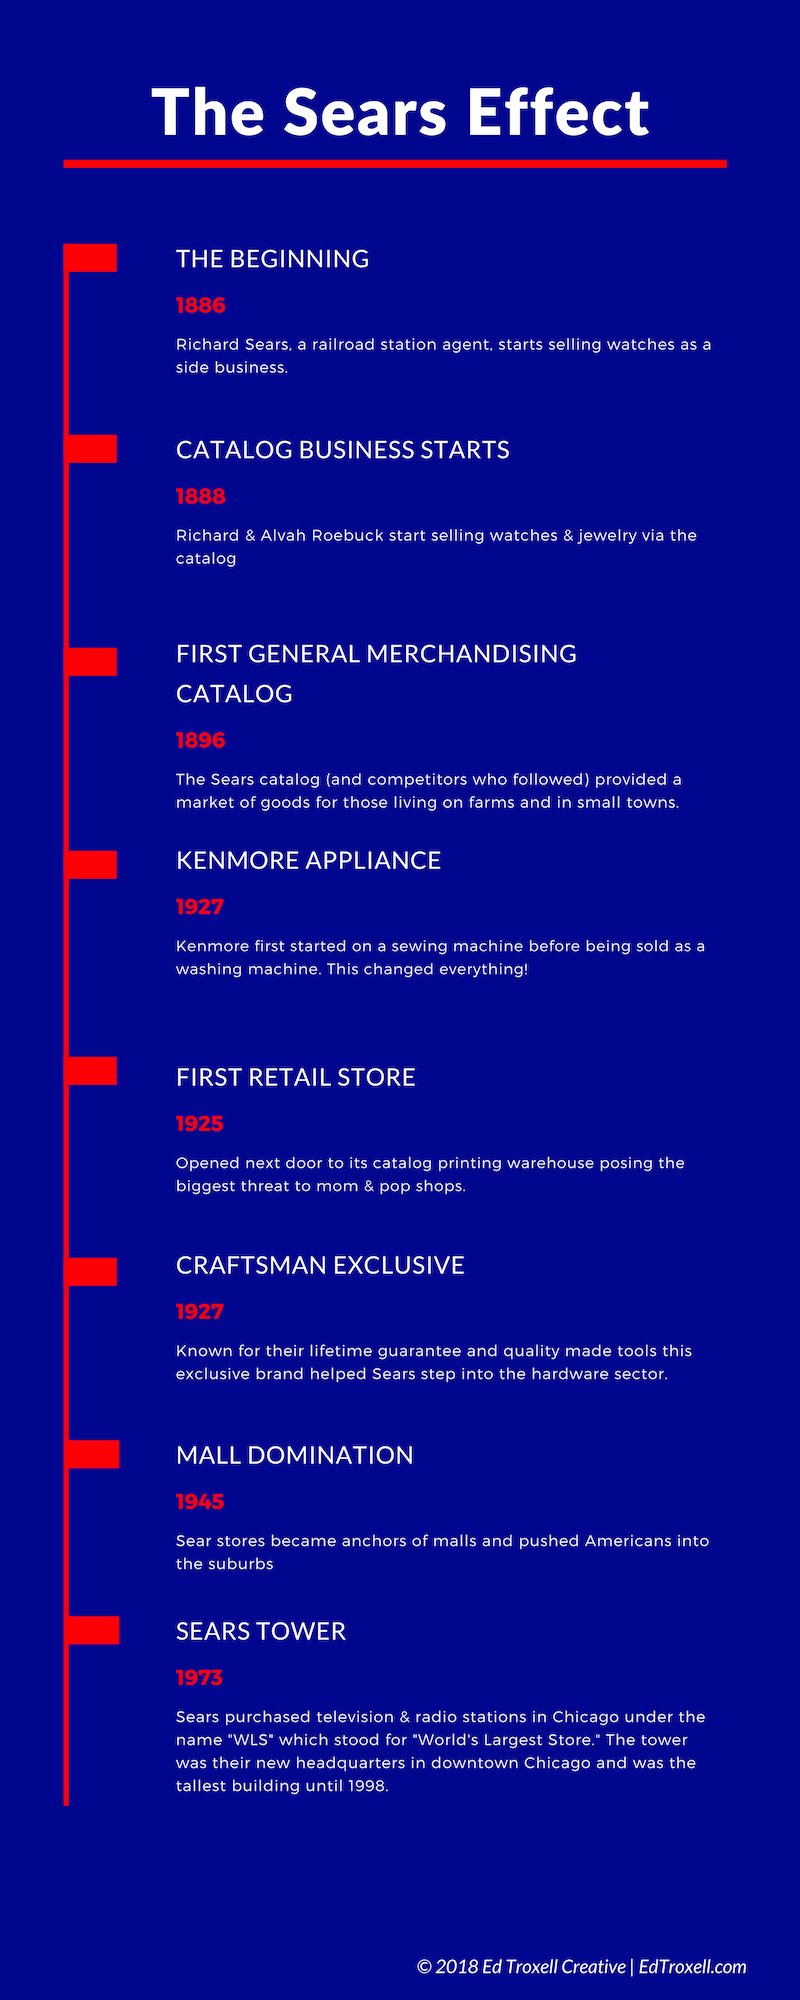 A timeline of the history of Sears